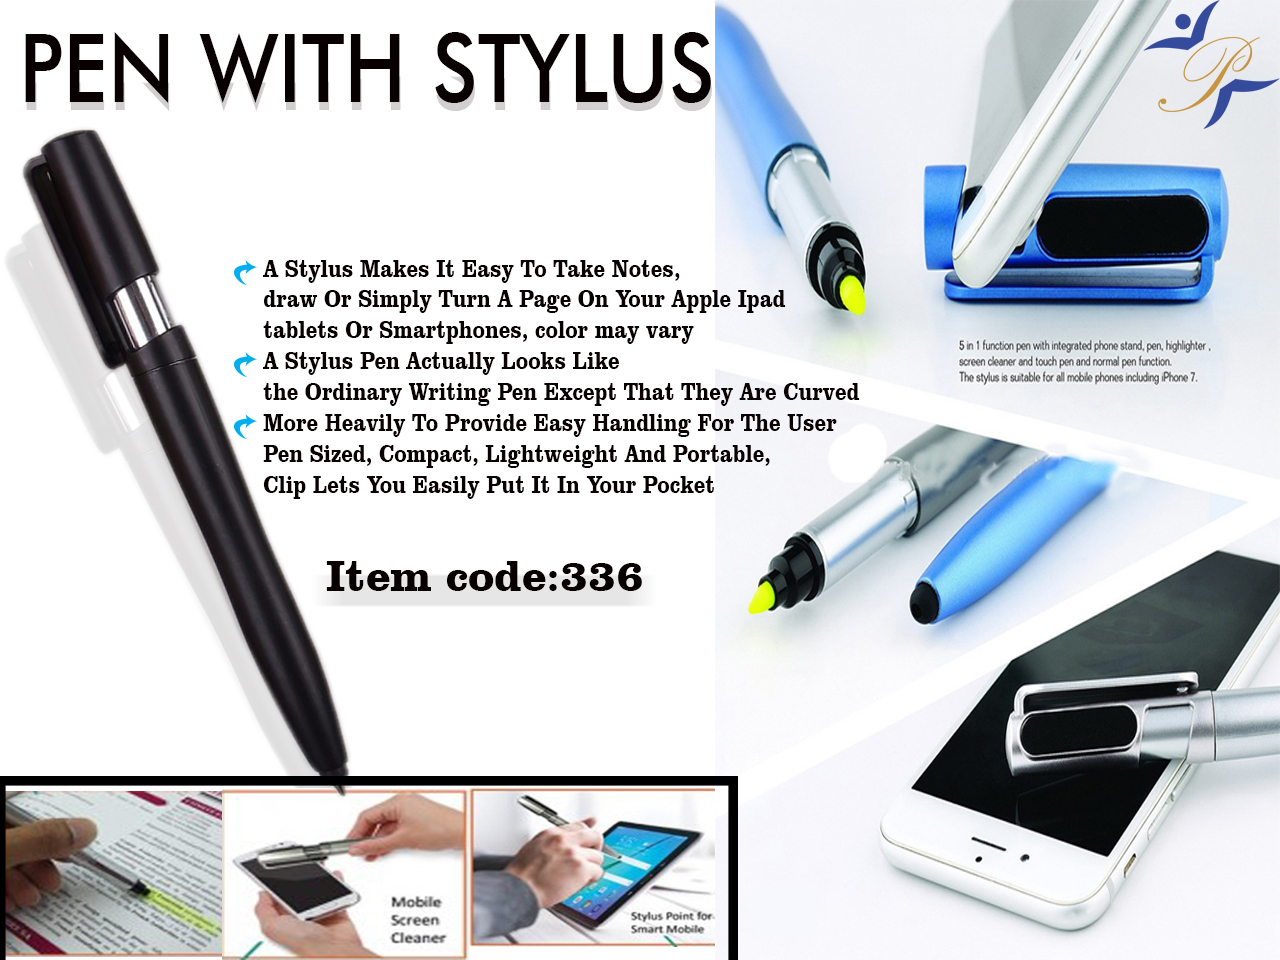 stylus pen with higlighter